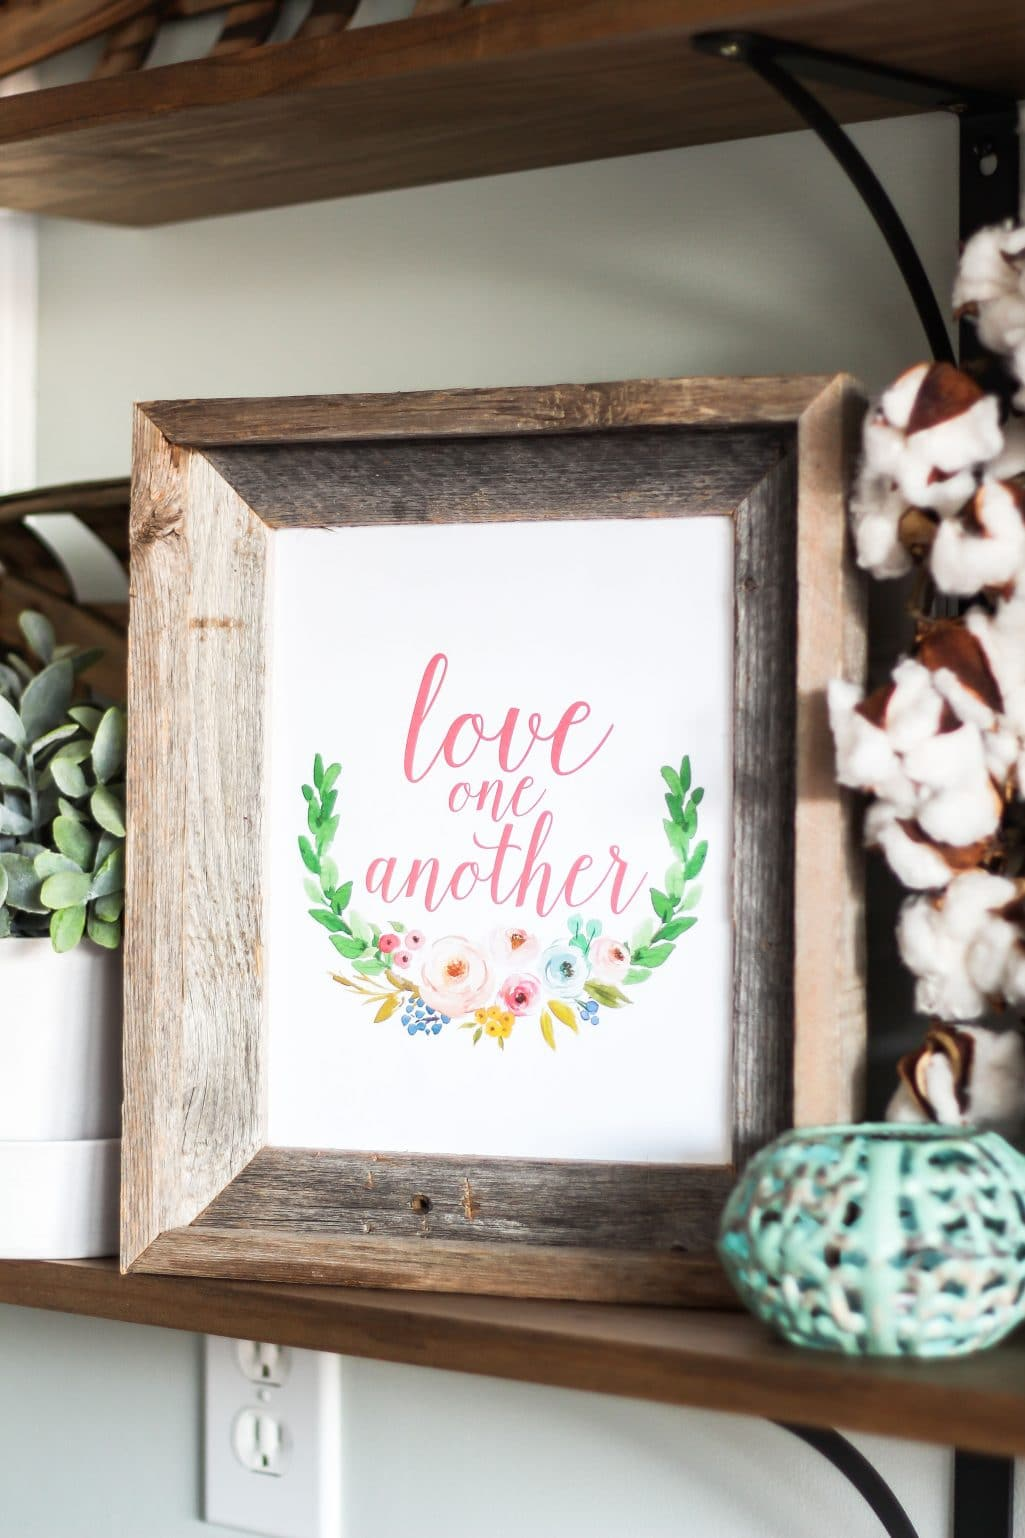 Love One Another Free Valentine's Day Printable + 9 More Valentine's Day Printables!